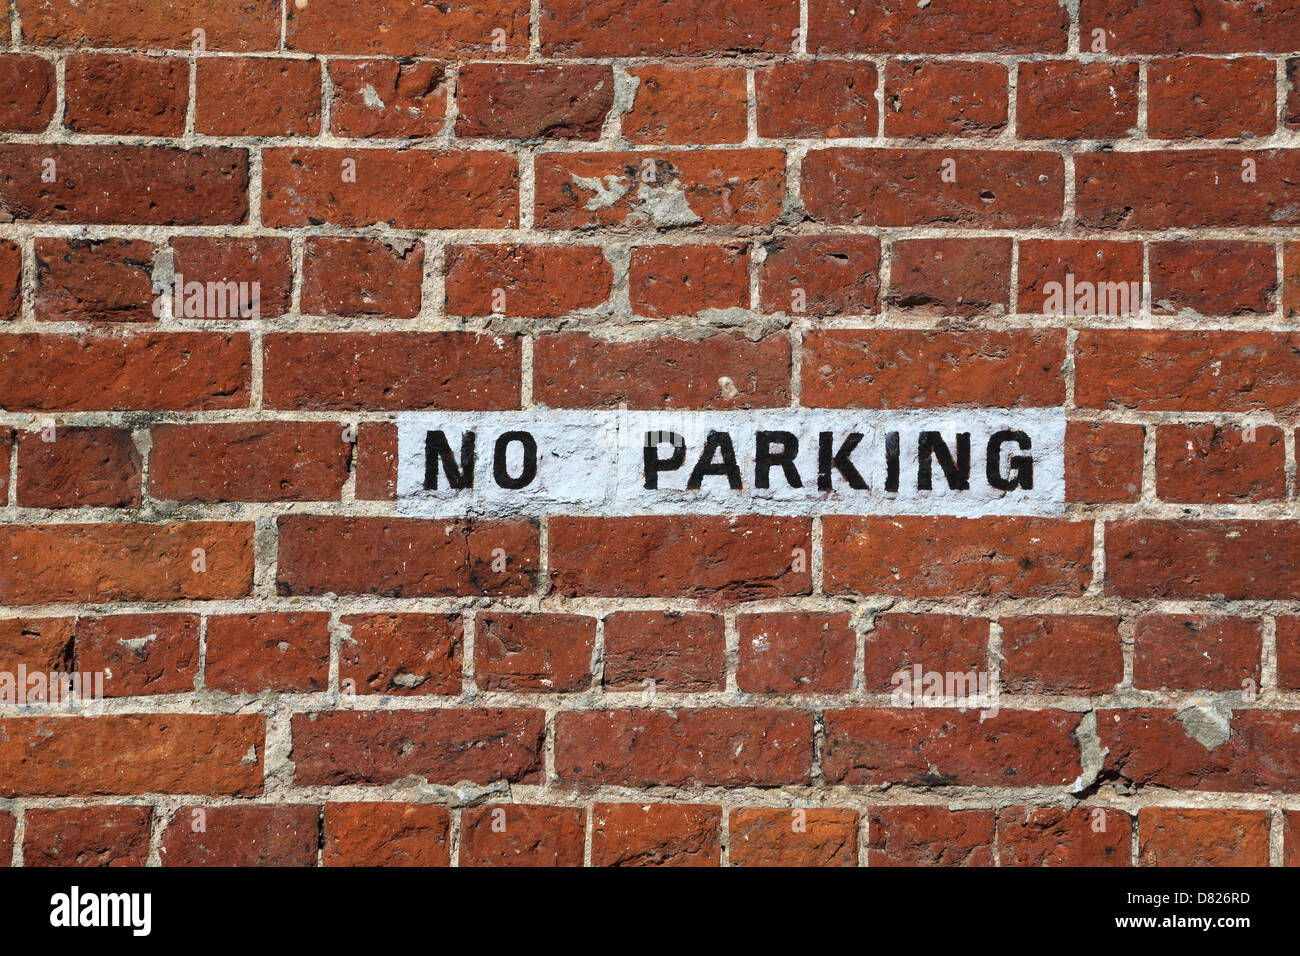 no parking sign painted on a brick wall - Stock Image